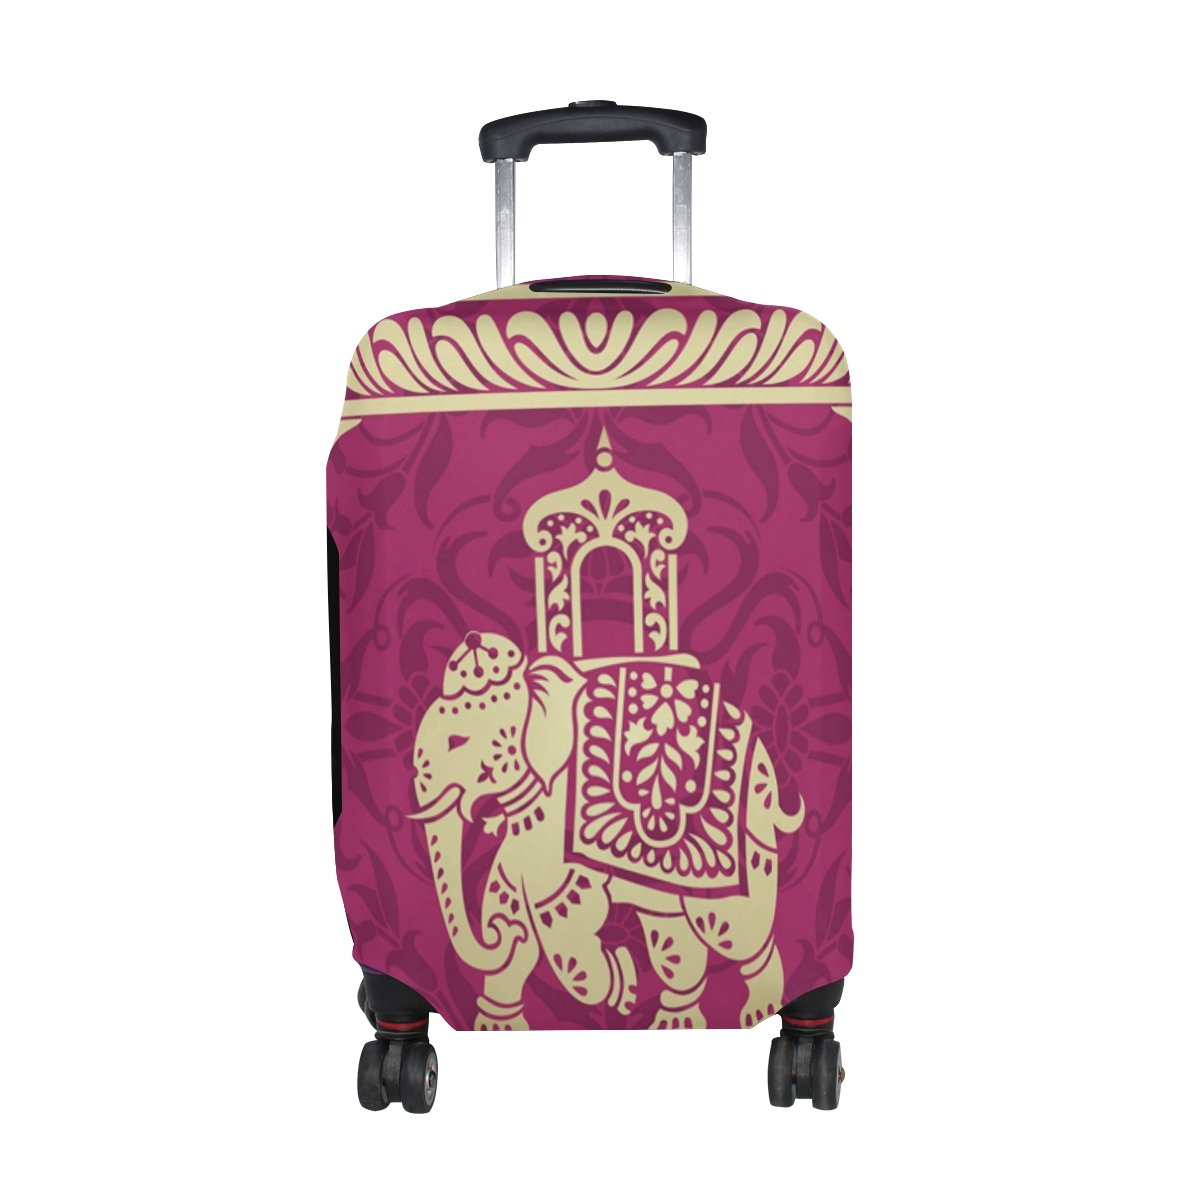 Hippie Indian Elephant Mandala Luggage Cover Travel Suitcase Protector Fits 26-28 Inch Luggage